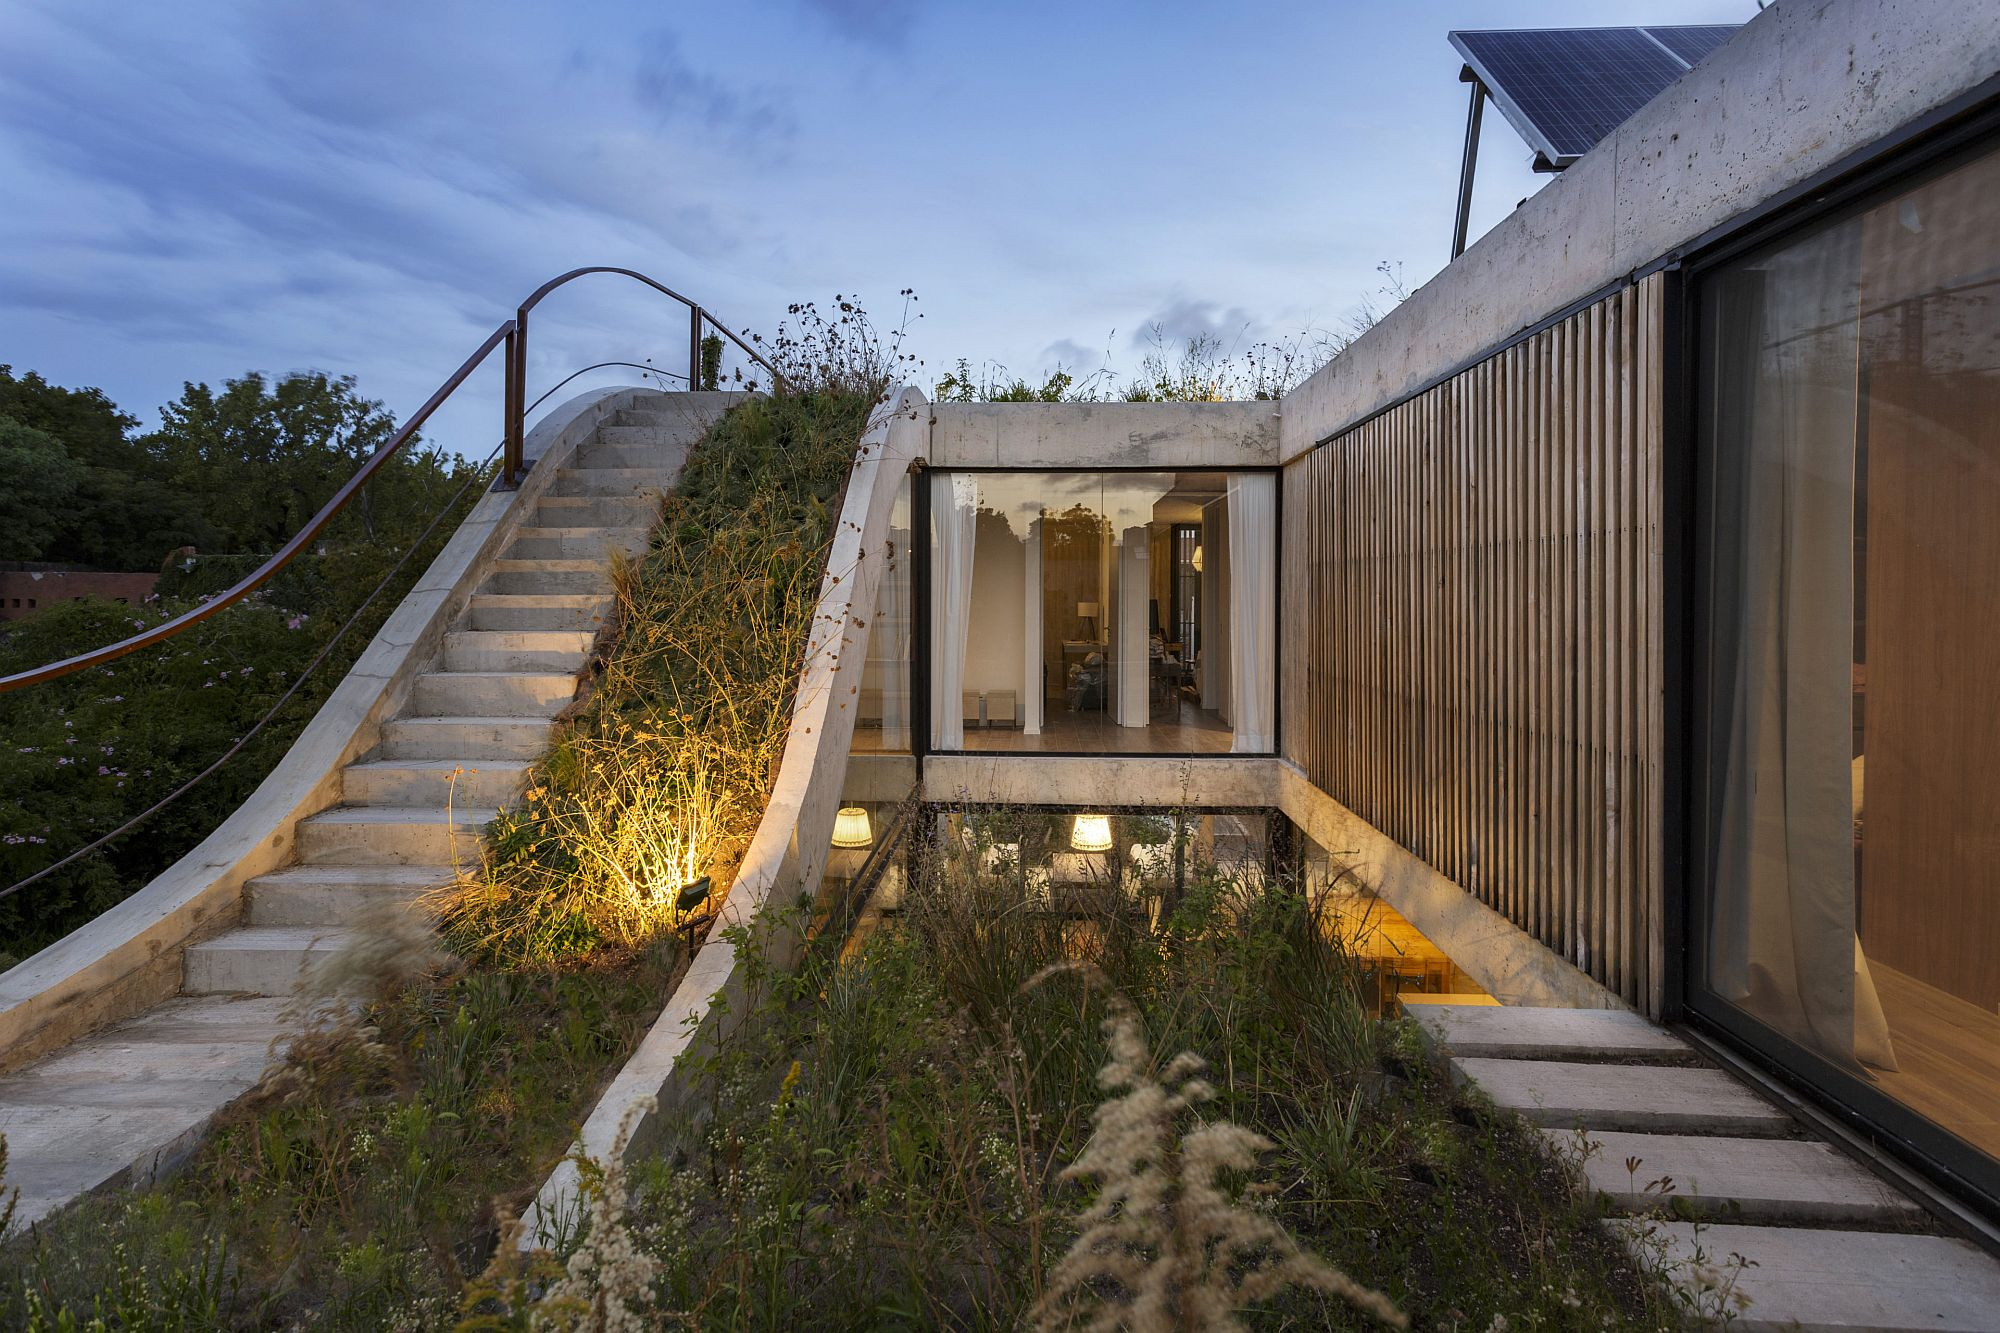 System of green ramps connects different levels of the house and adds ample greenery